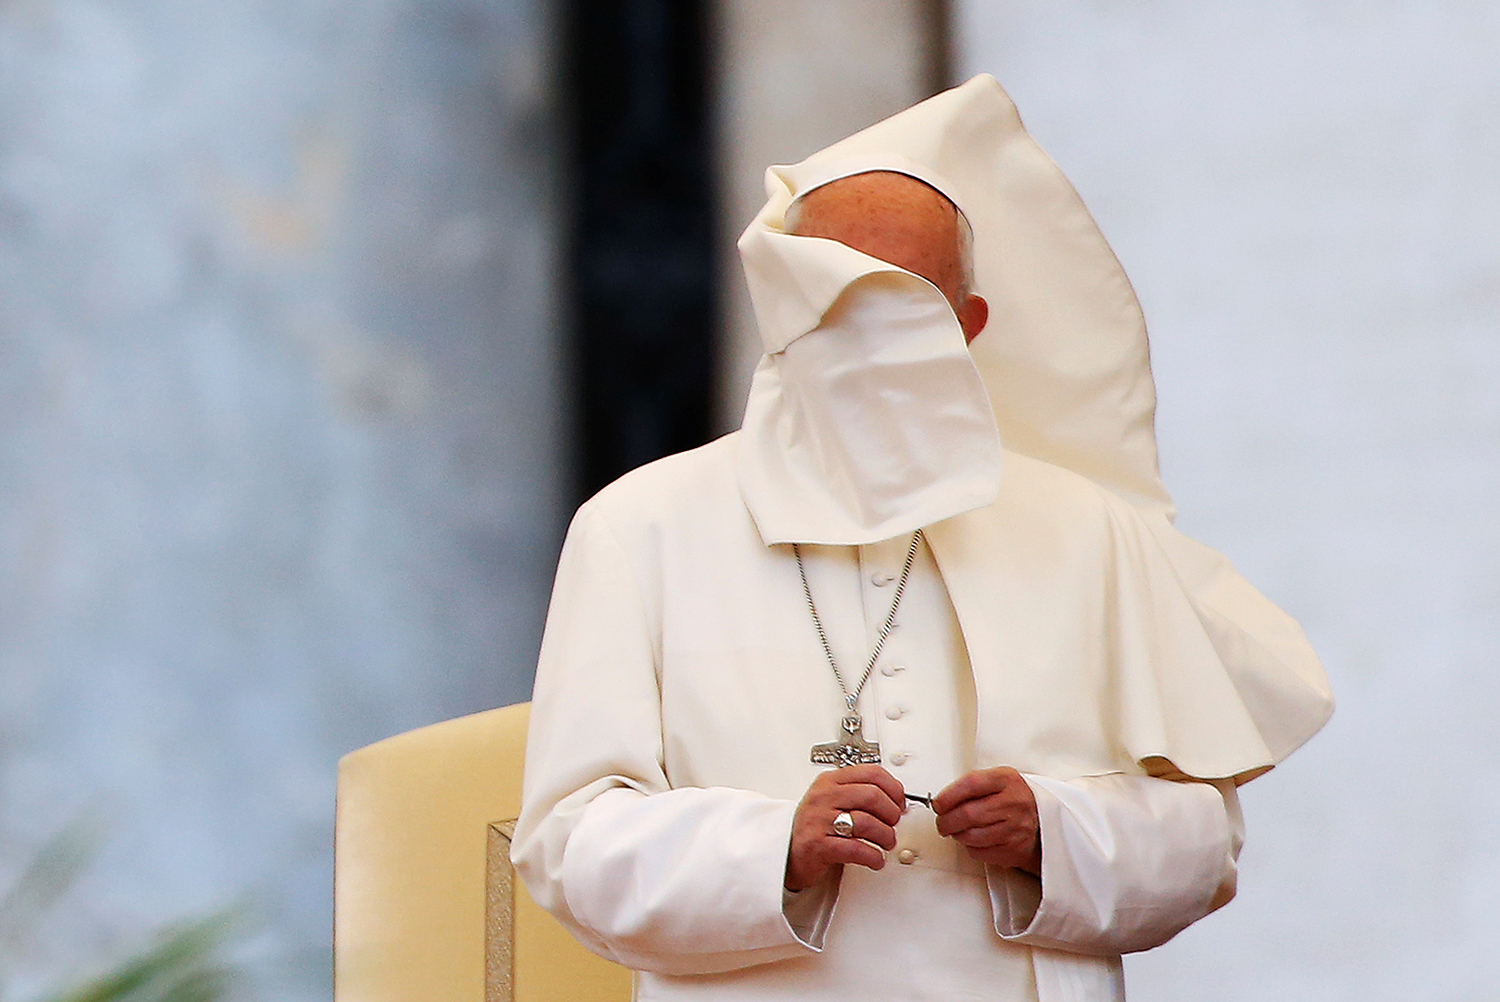 A gust of wind blows Pope Francis' mantle as he attends a Marian